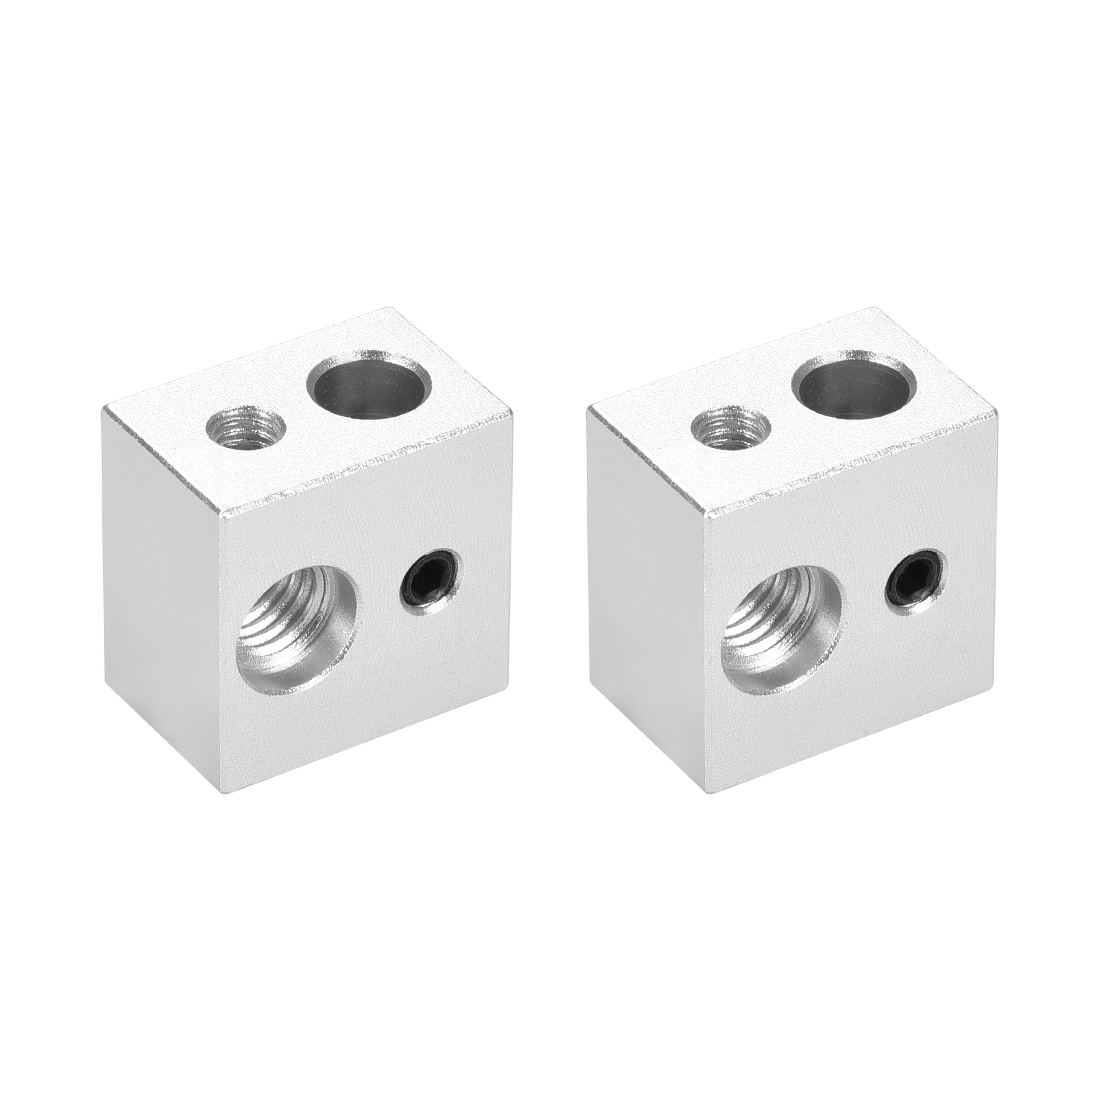 Aluminum Heater Block, Specialized for MK10 M7 1.75mm Filament 2pcs